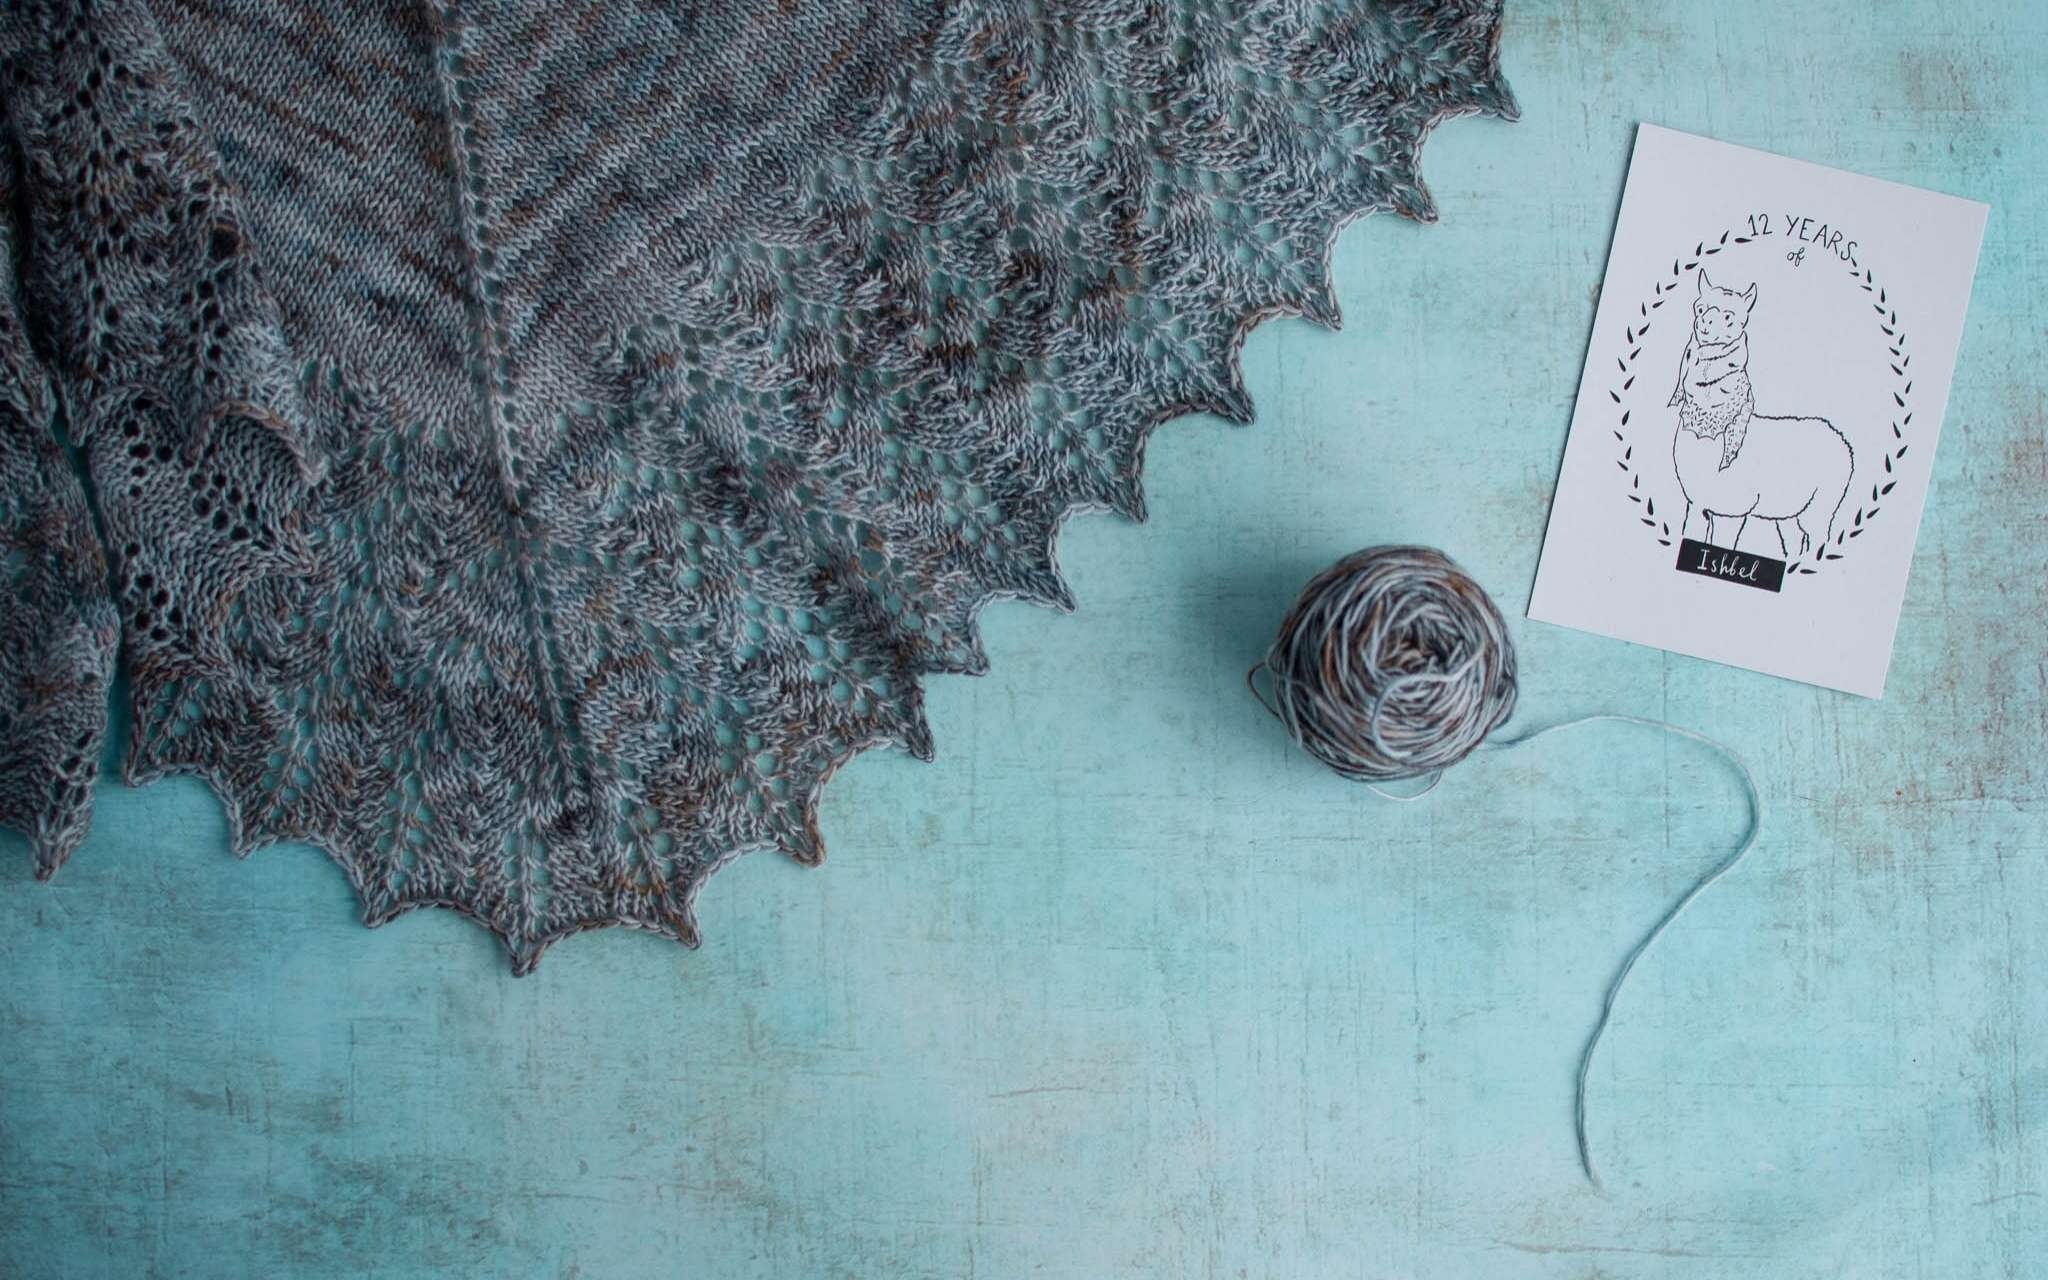 A grey lace shawl lies flat on a blue mottled surface, next to a ball of the grey yarn used and a postcard showing an illustration of an alpaca wearing a shawl.